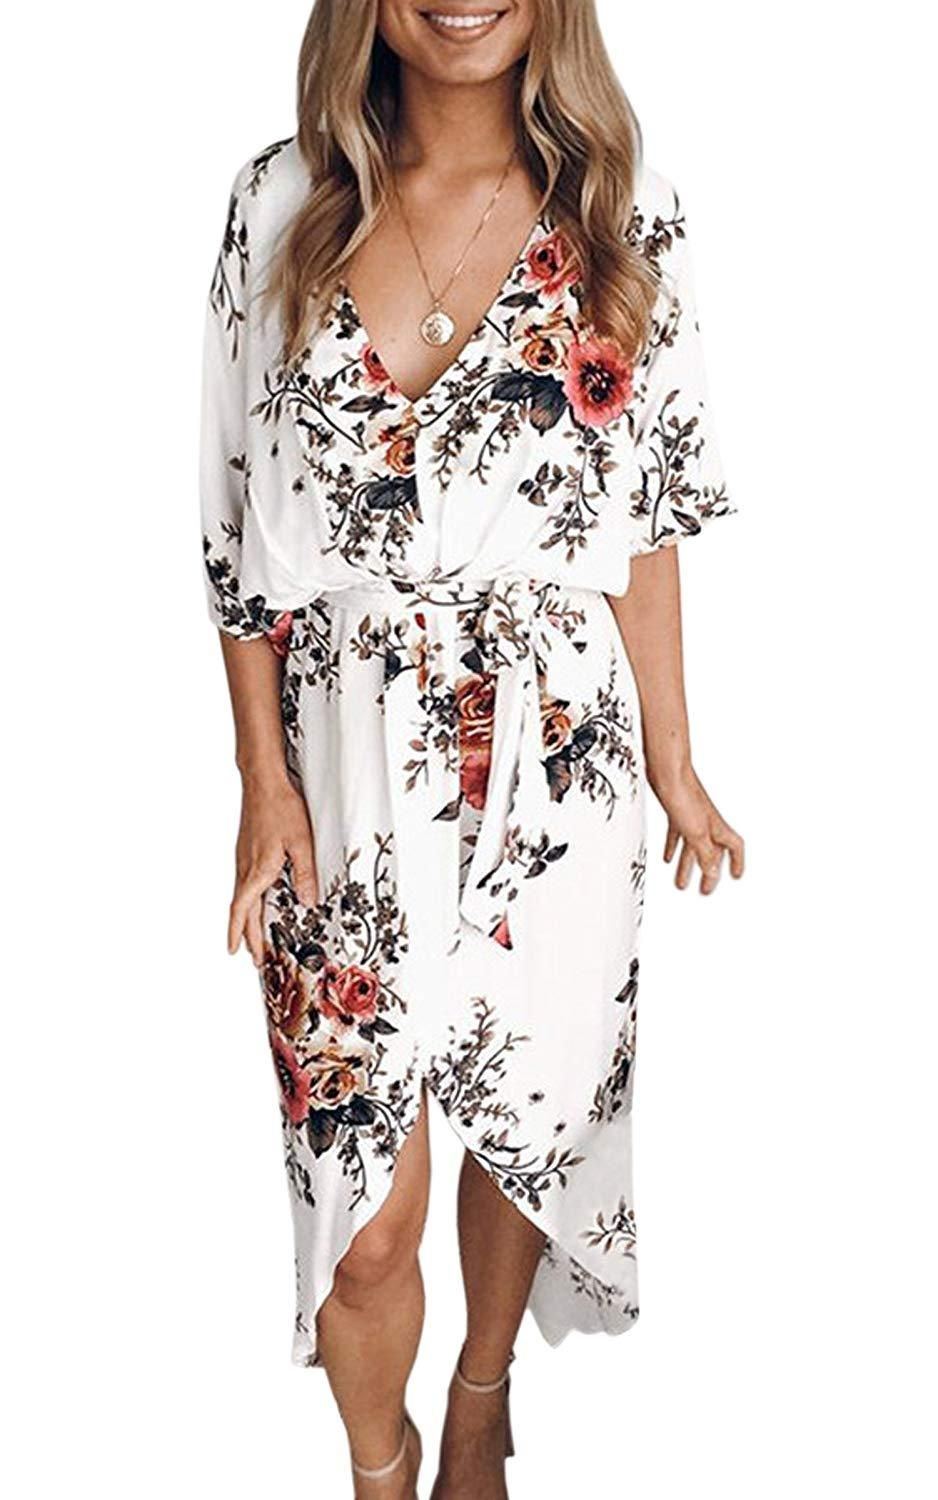 ccf425f530c3 ECOWISH Womens Dresses Summer Casual V-Neck Floral Print Geometric Pattern  Belted Dress